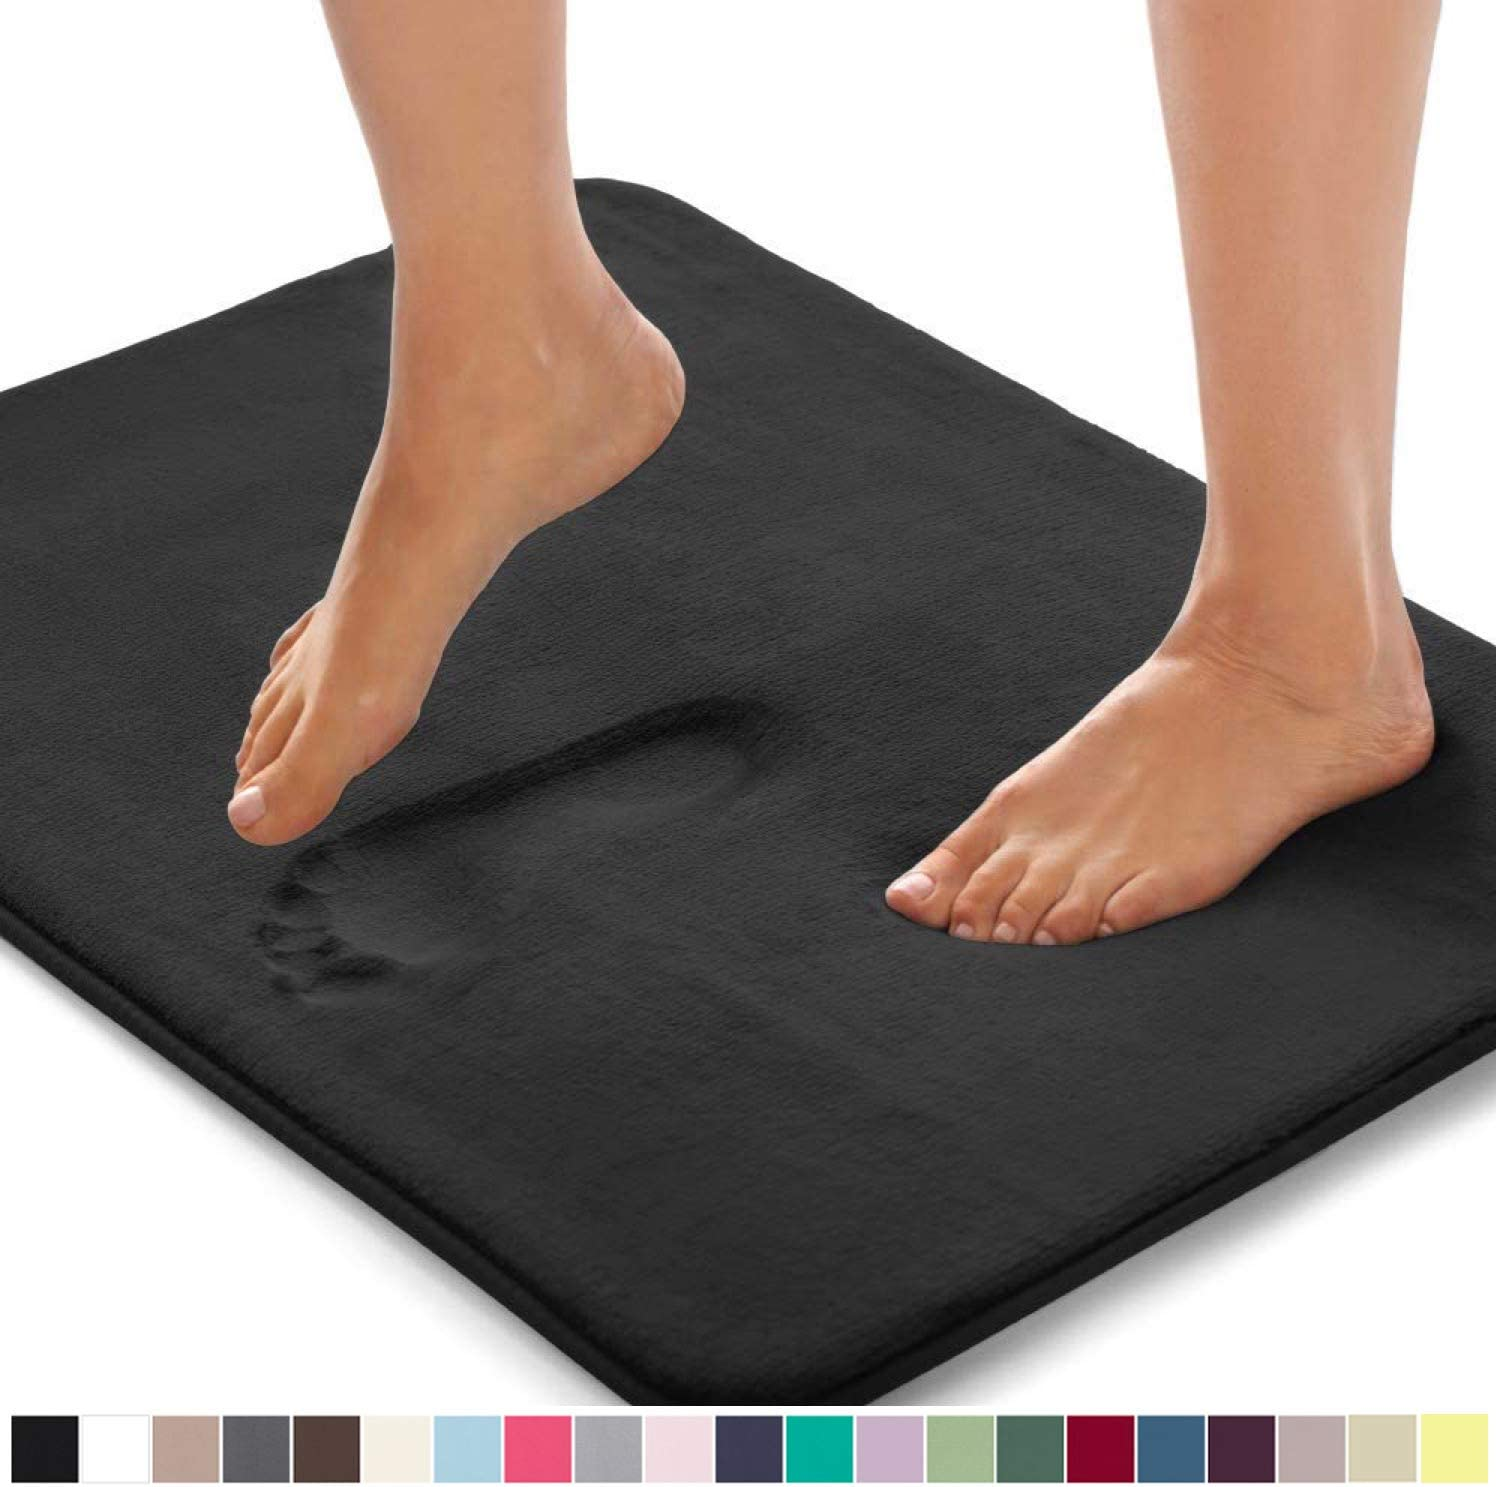 Gorilla Grip Original Thick Memory Foam Bath Rug, 30x20, Cushioned, Soft Floor Mats, Absorbent Premium's Bathroom Mat Rugs, Machine Washable, Luxury Plush Comfortable Carpet for Bath Room, Black